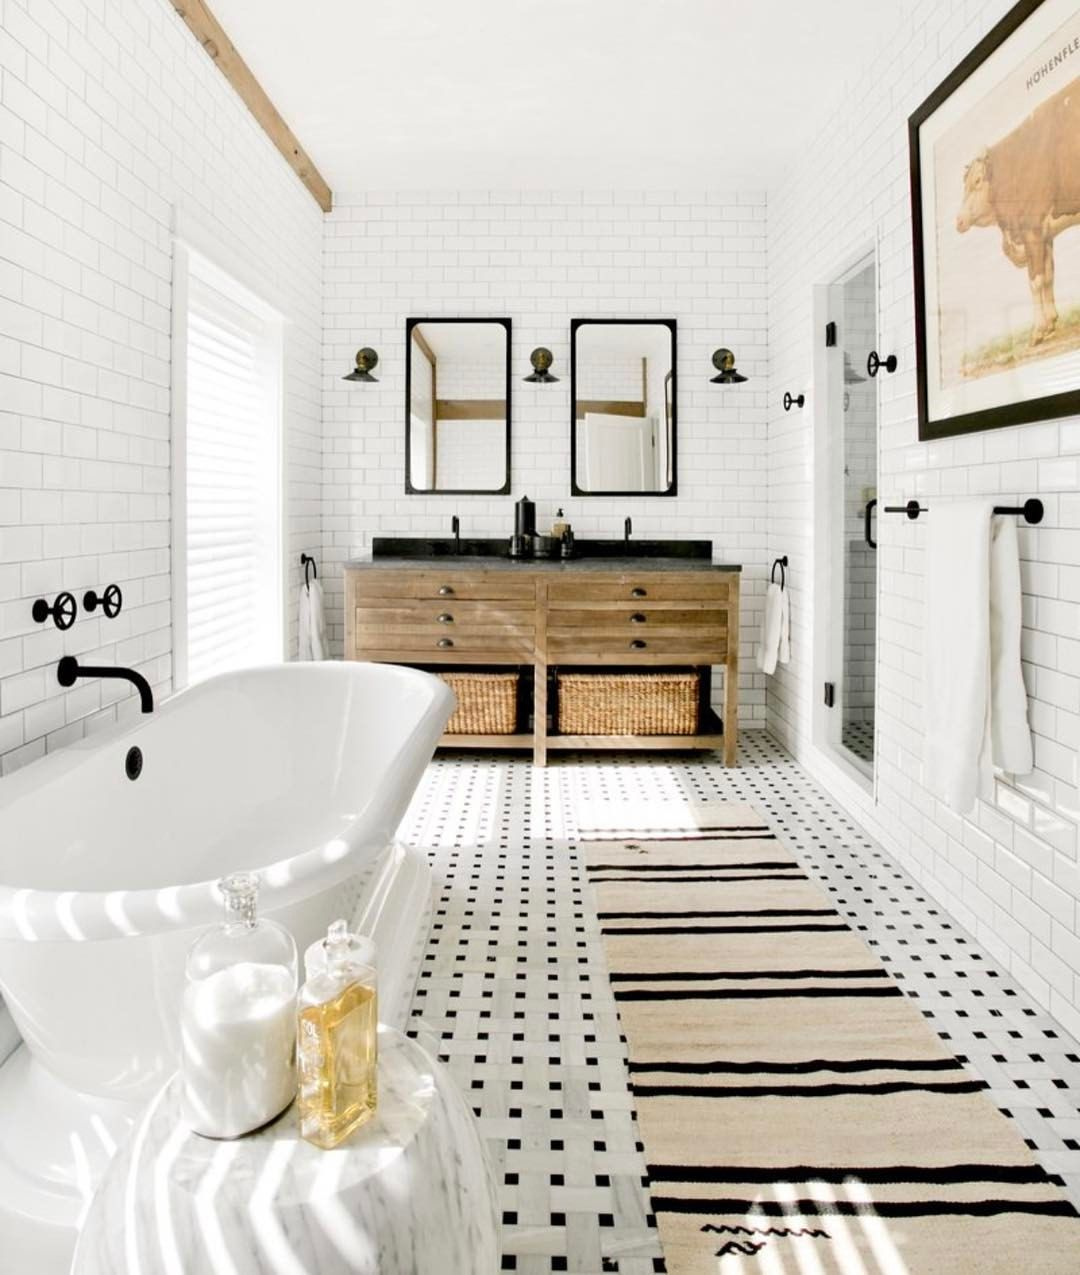 The Luxury Bathroom Interior Design You Need to Tune In! | Pinterest ...